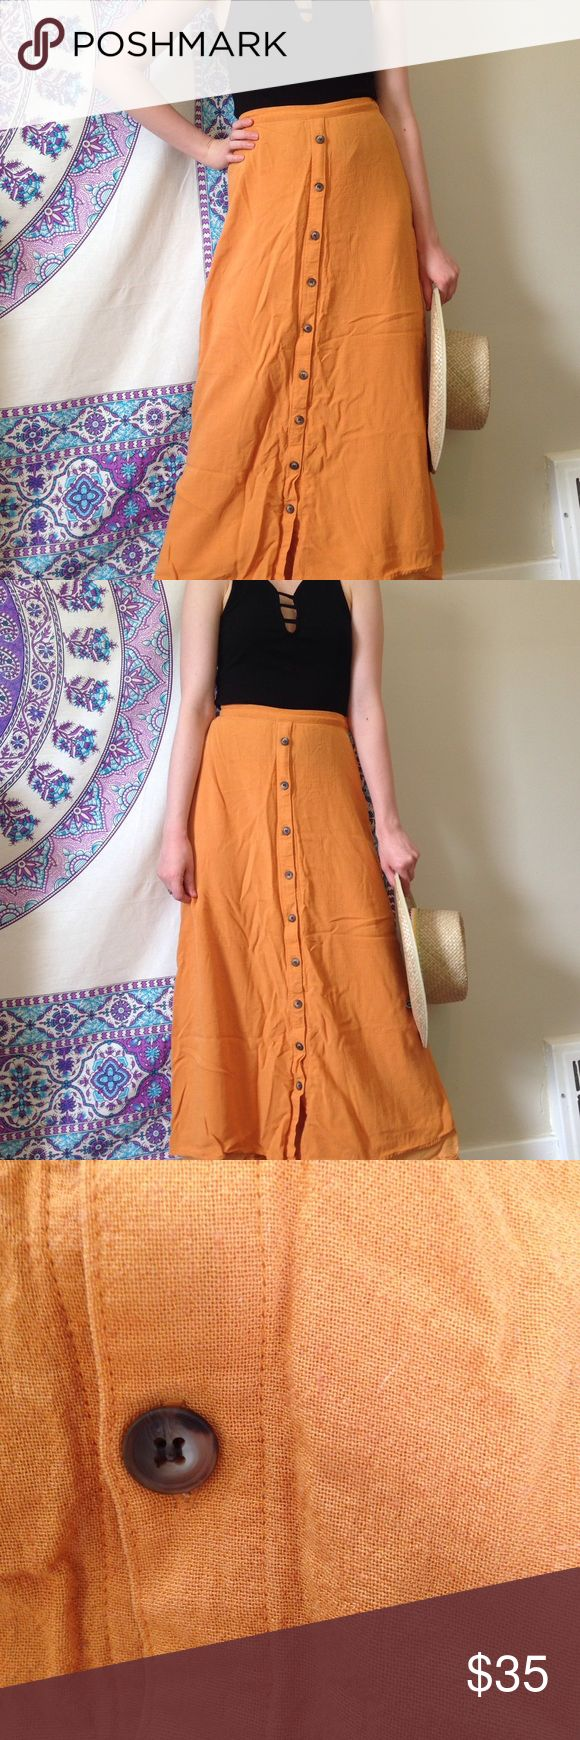 Burnt Orange Maxi Skirt Perfect condition just needs an ironing. Button detailing down the front. Liner underneath the skirt to ensure no seeing through the material. Feel free to make an offer and ask any questions 🛍💕✨ Ellen Tracy Skirts Maxi